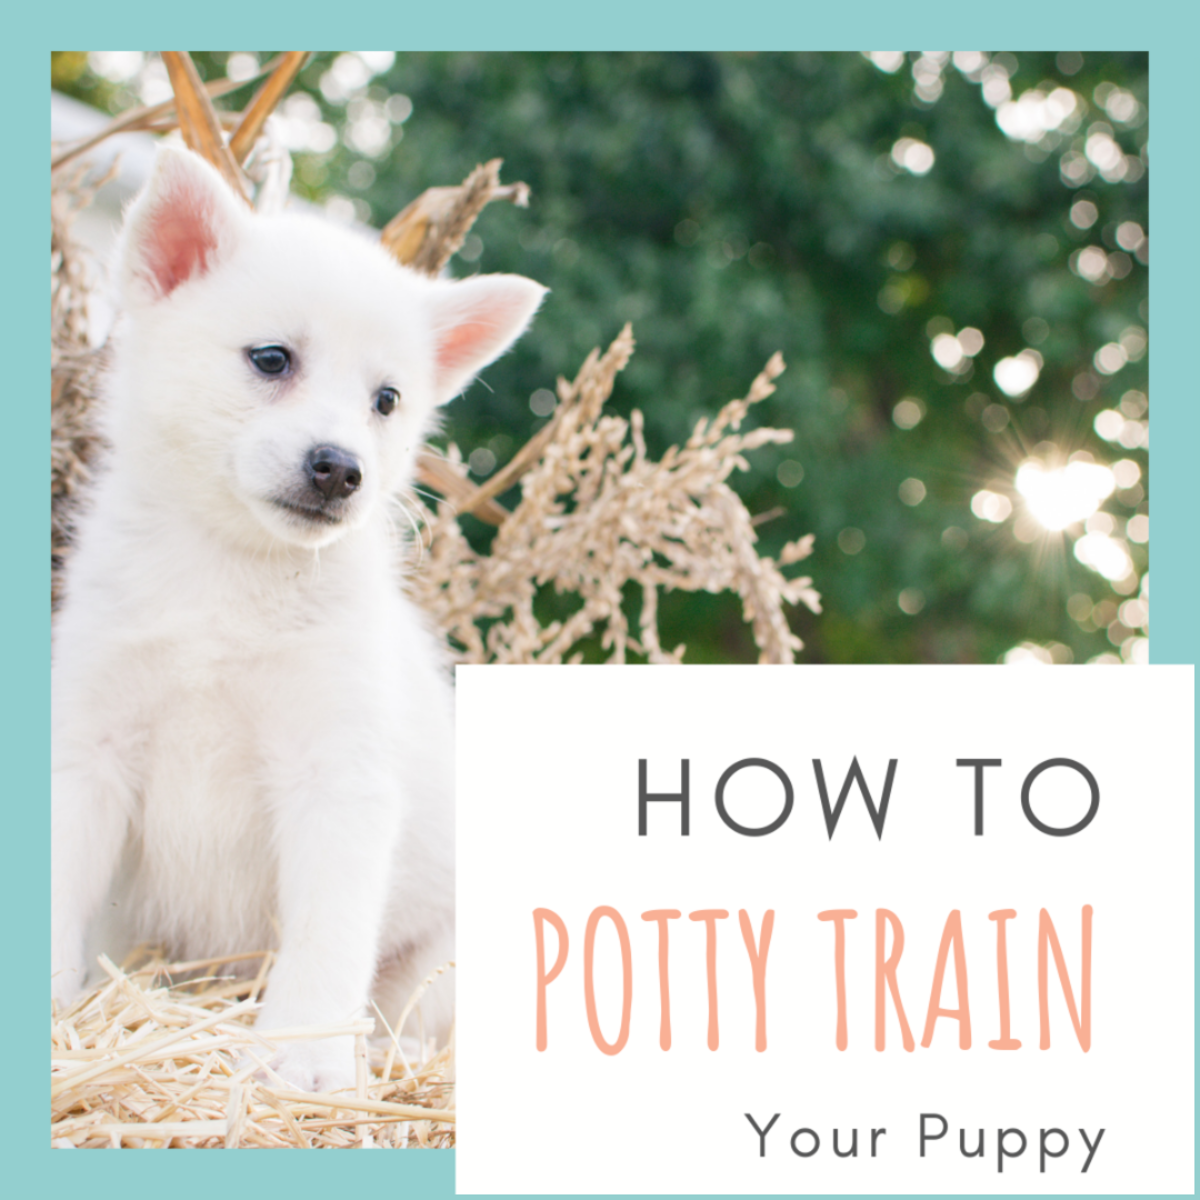 Potty training your puppy is hard work, but the right strategies will make it a lot easier.